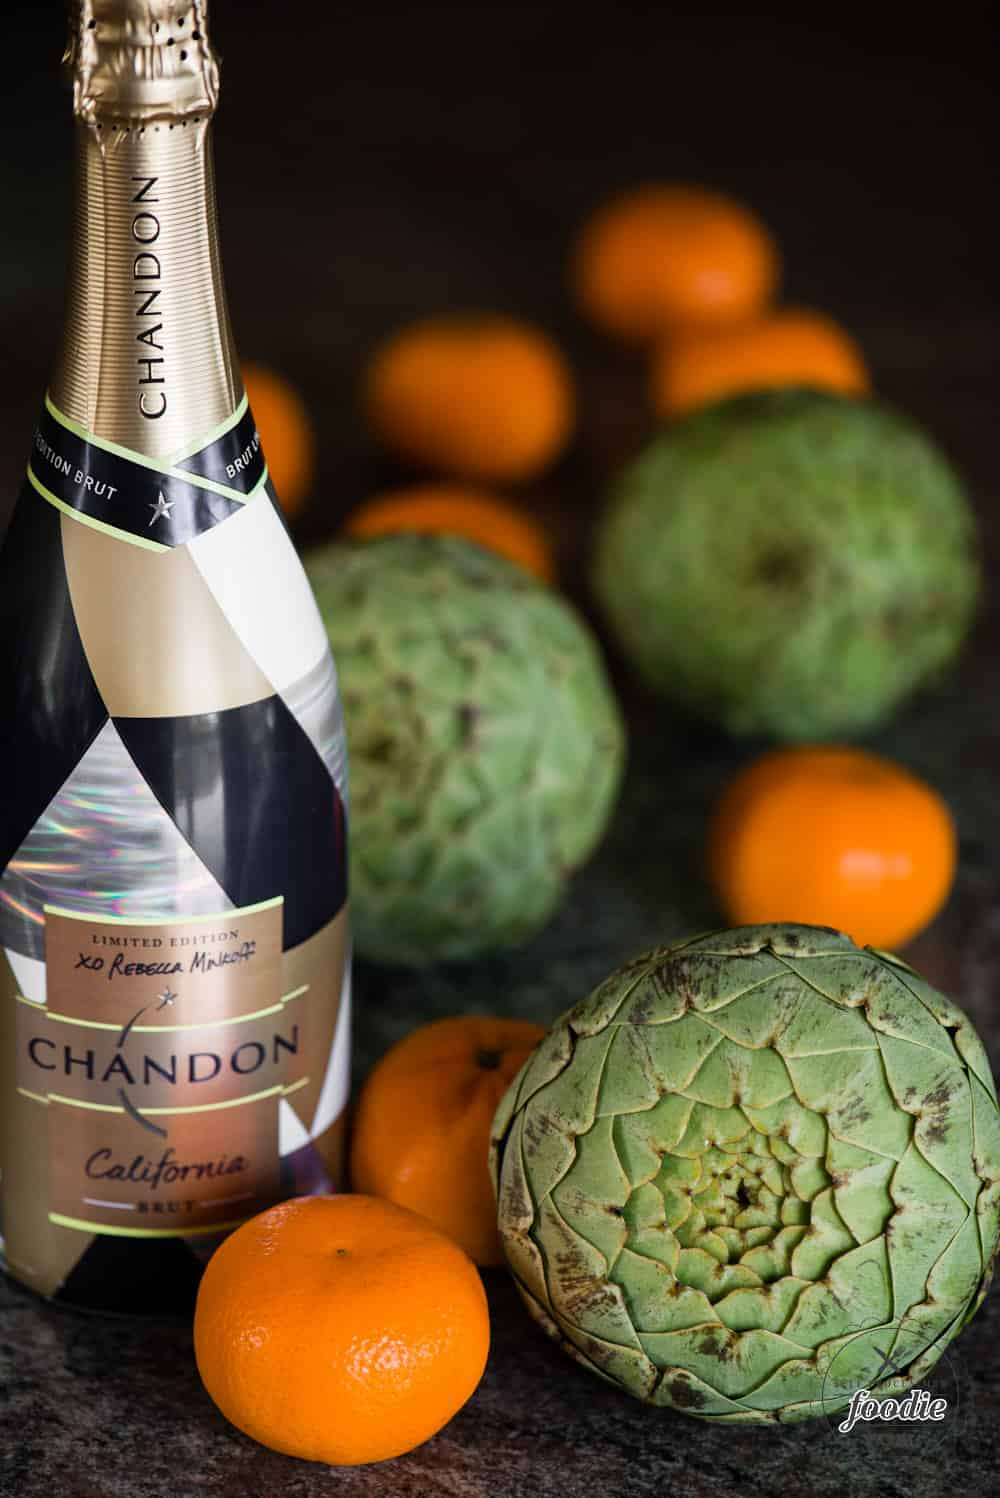 How to steam artichokes in orange juice and champagne